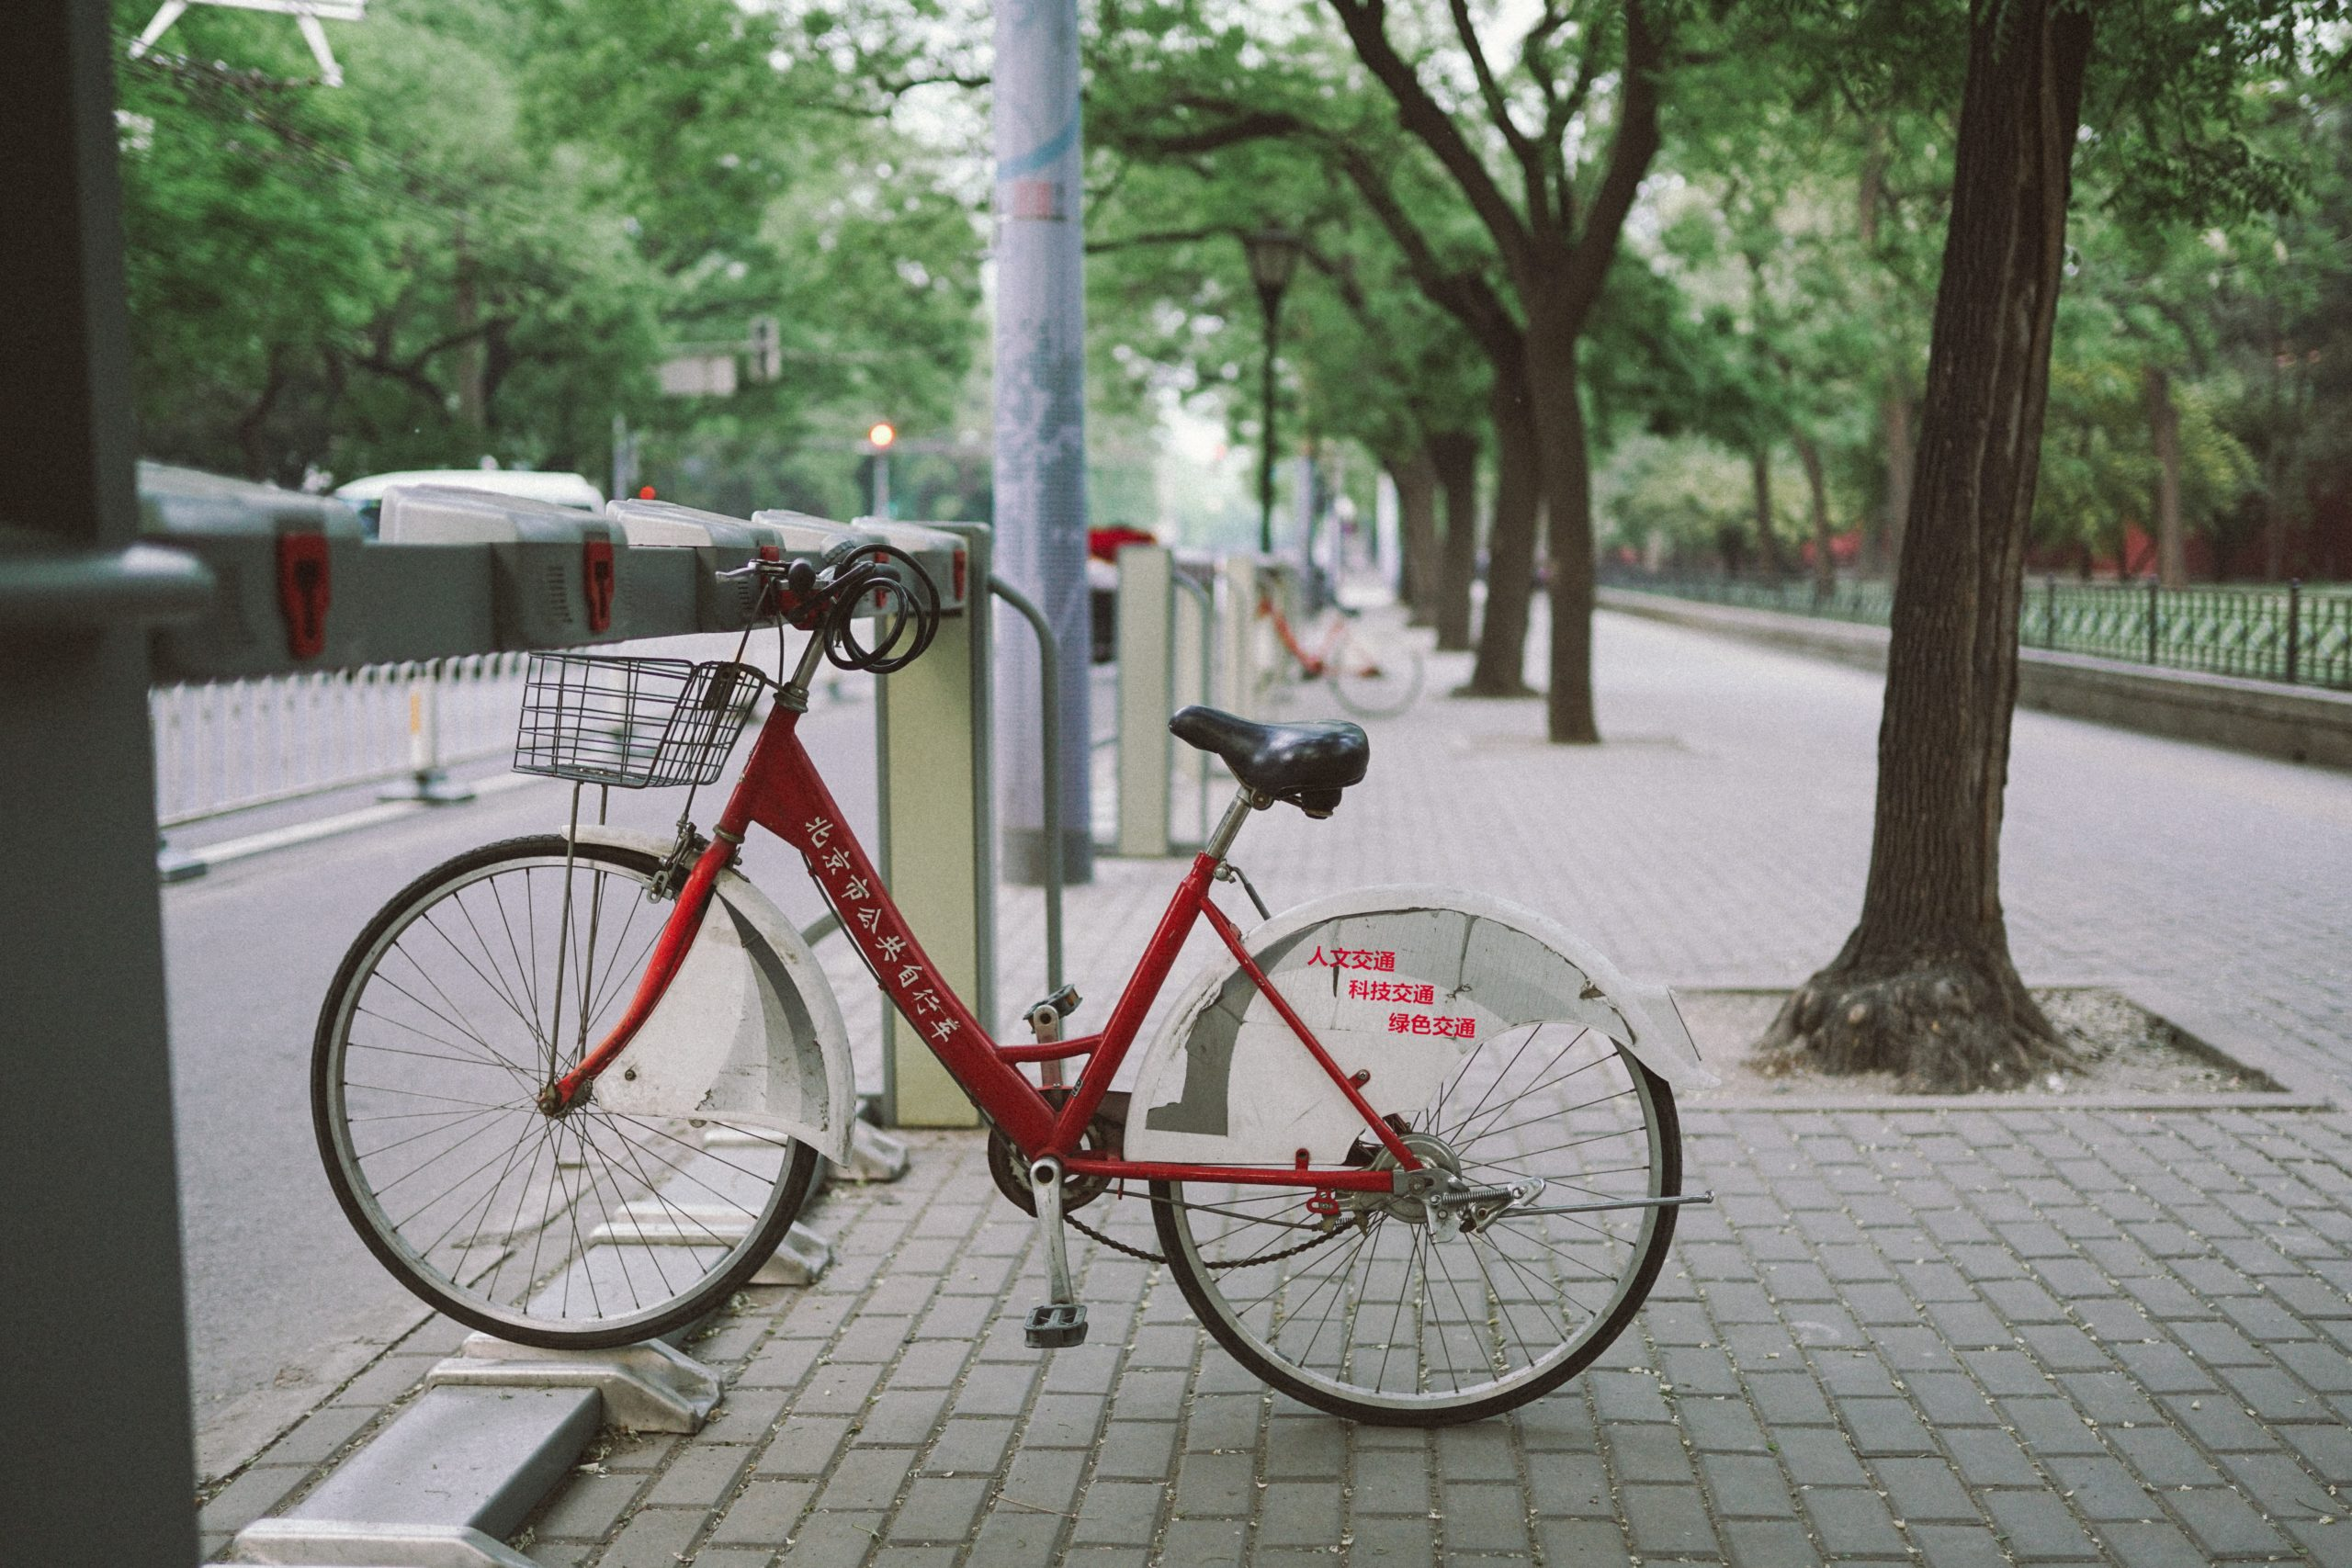 a bicycle - frugal living tips for moms in 2020